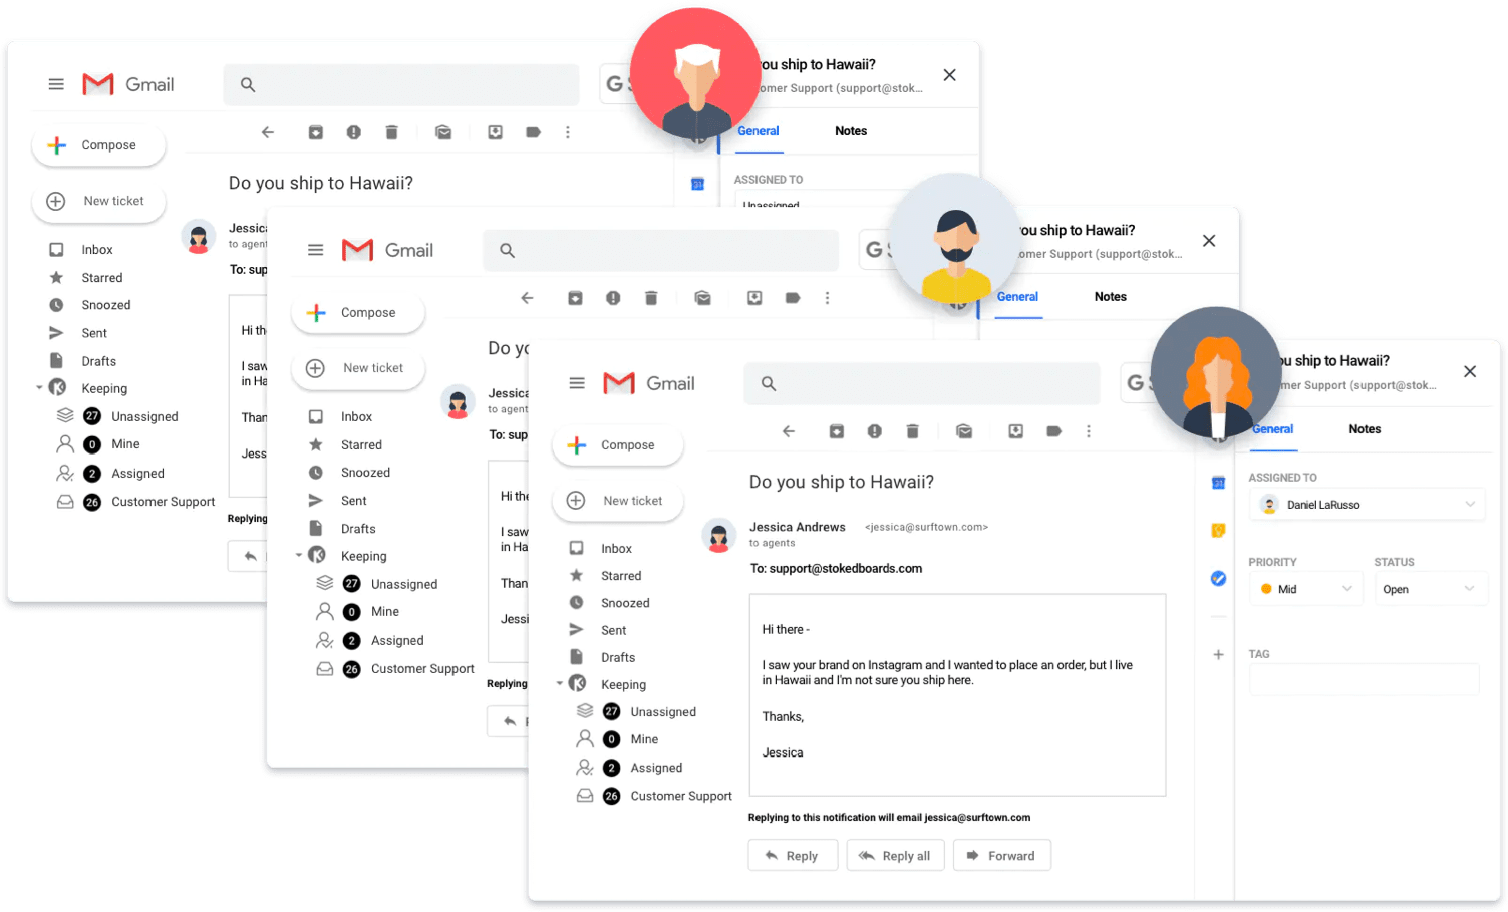 Keeping is a Google Groups alternative